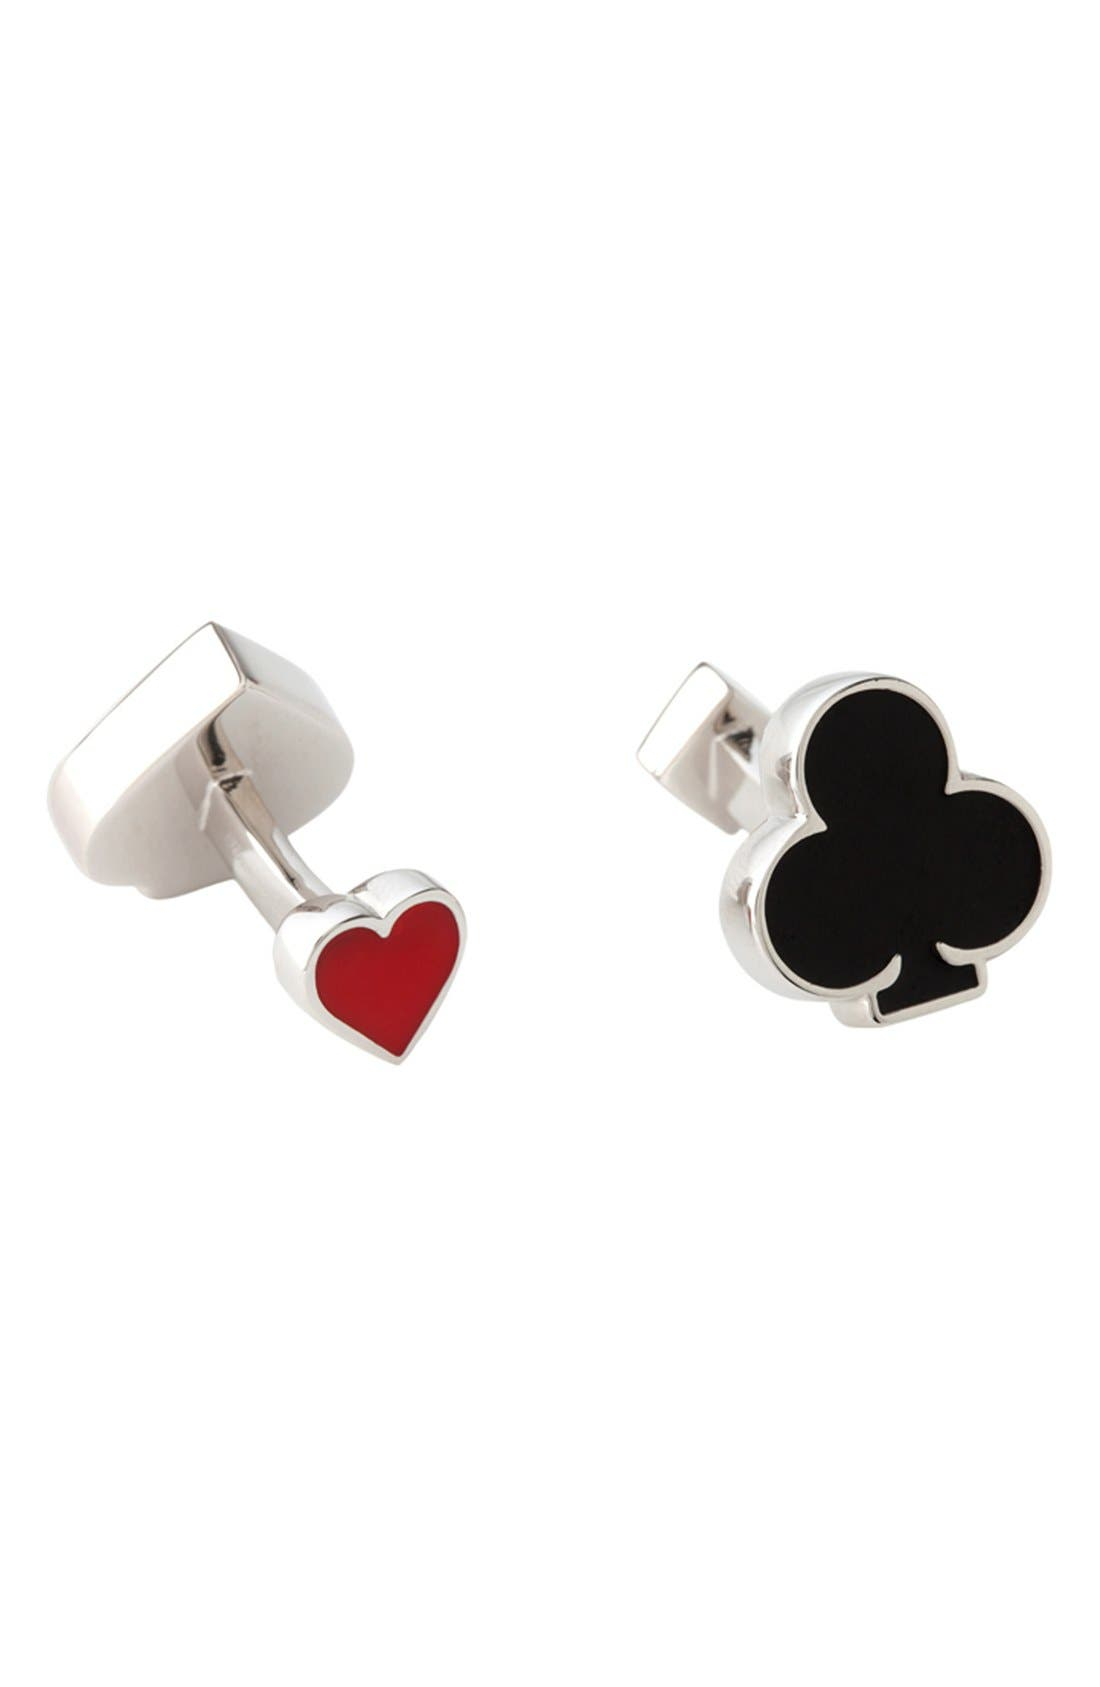 Card Suit Cuff Links,                         Main,                         color, Silver